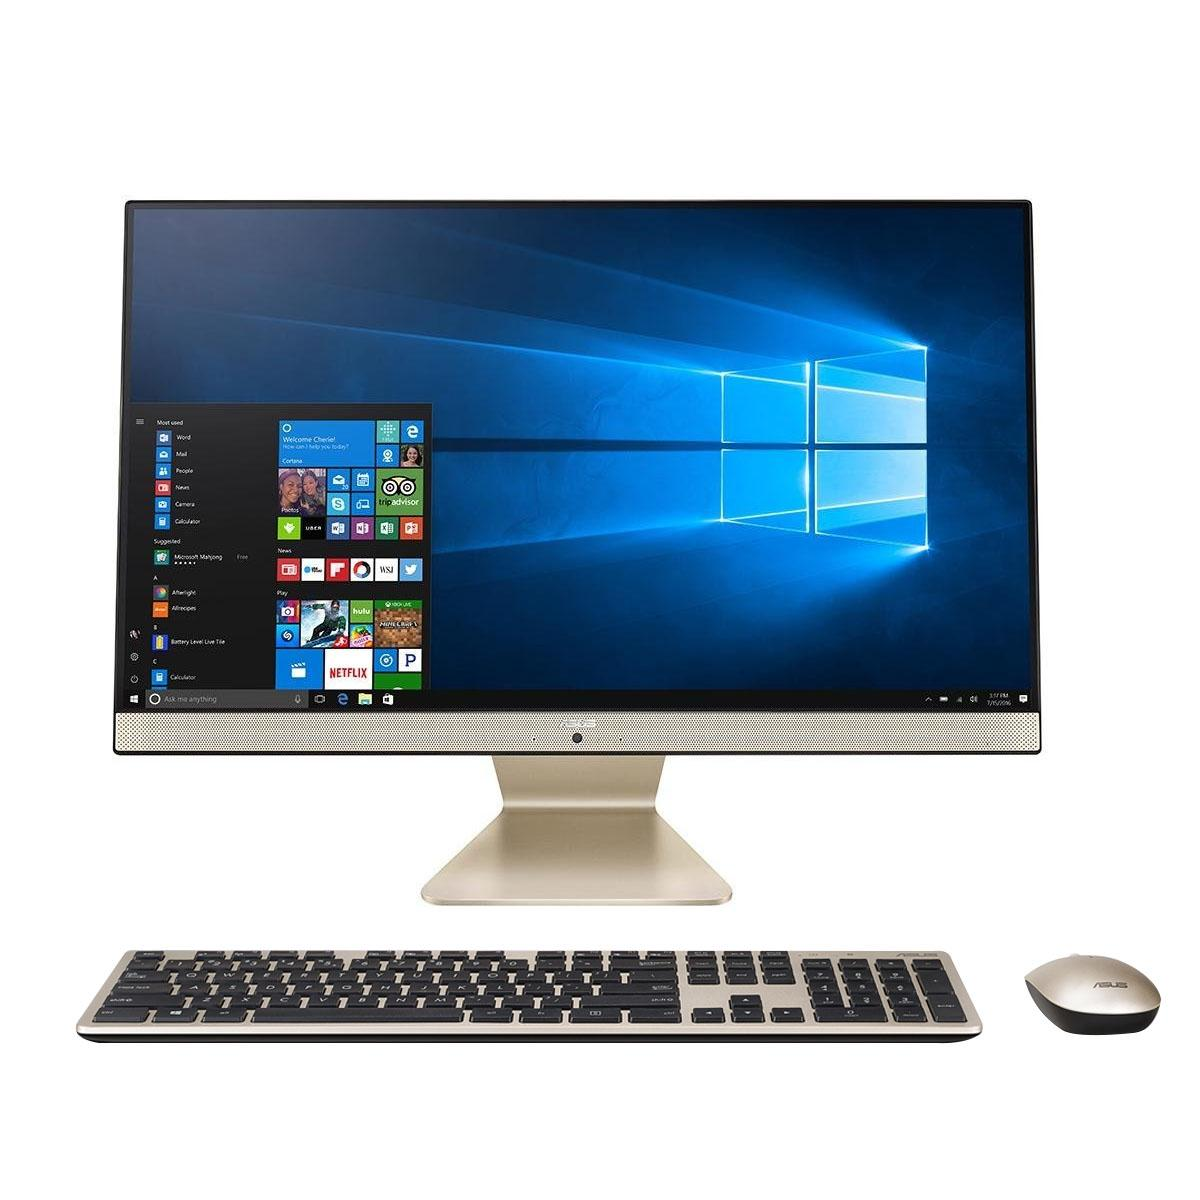 Asus Vivo Aio V241icgt Ba006t 23 8 In Fhd Touch 8th Gen Core I5